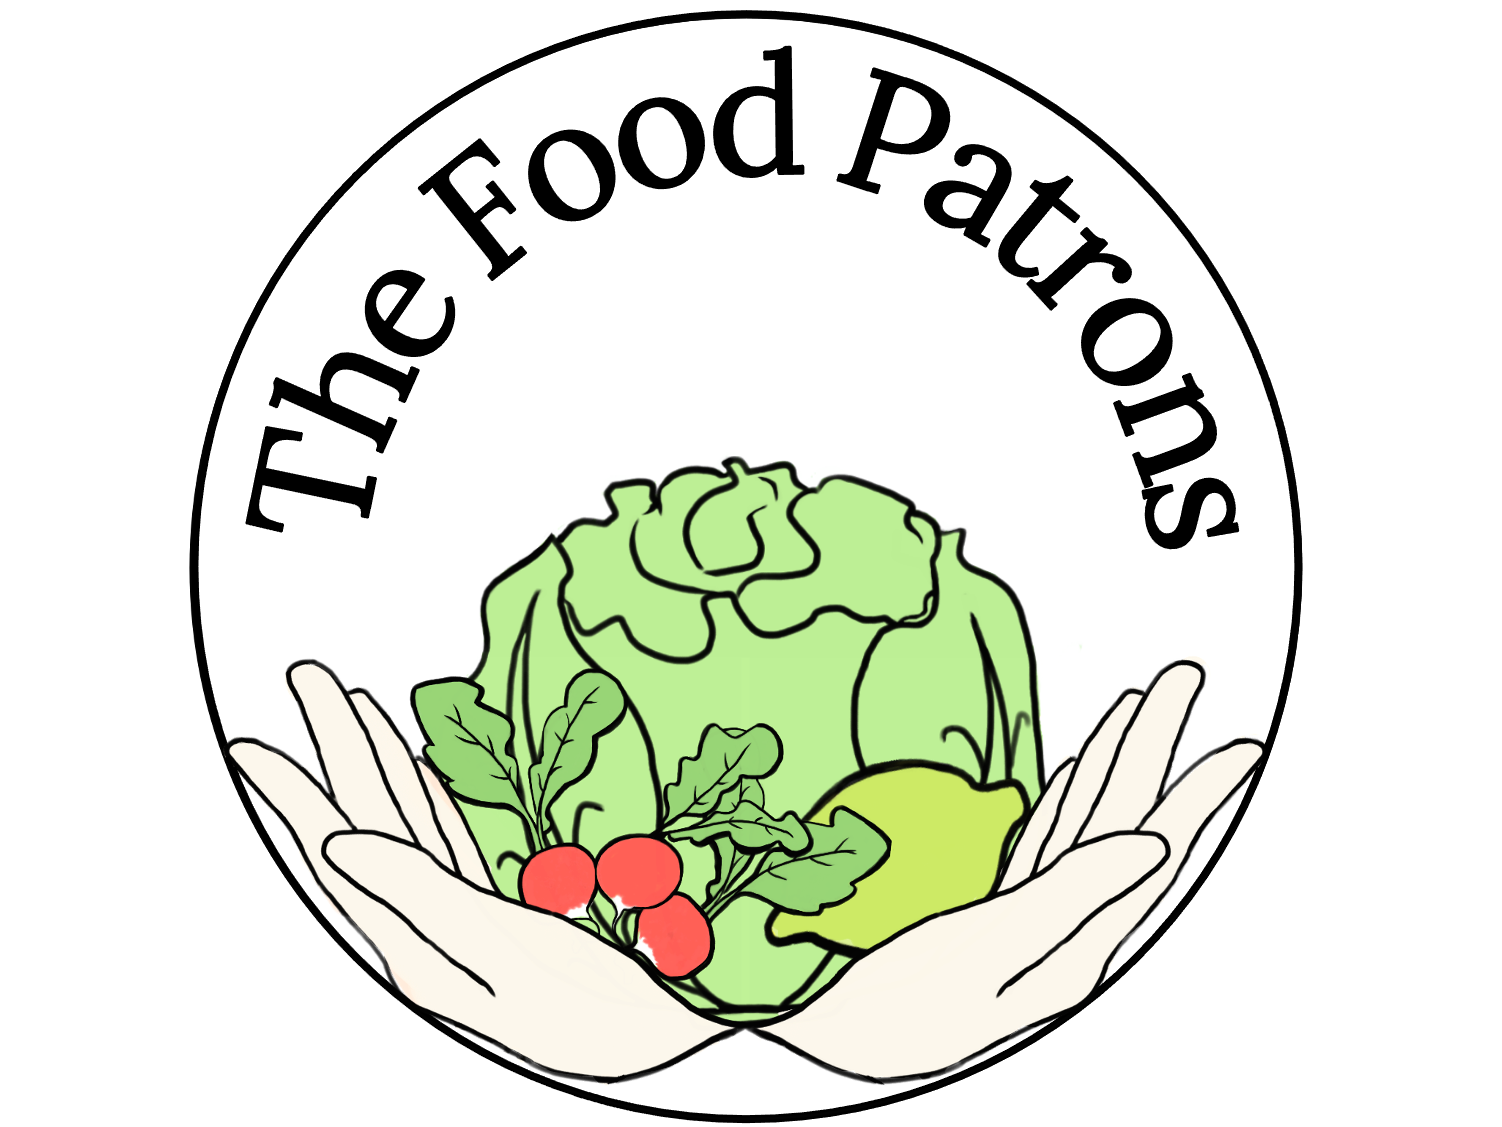 Logo of The Food Patrons - Hands holding fresh food